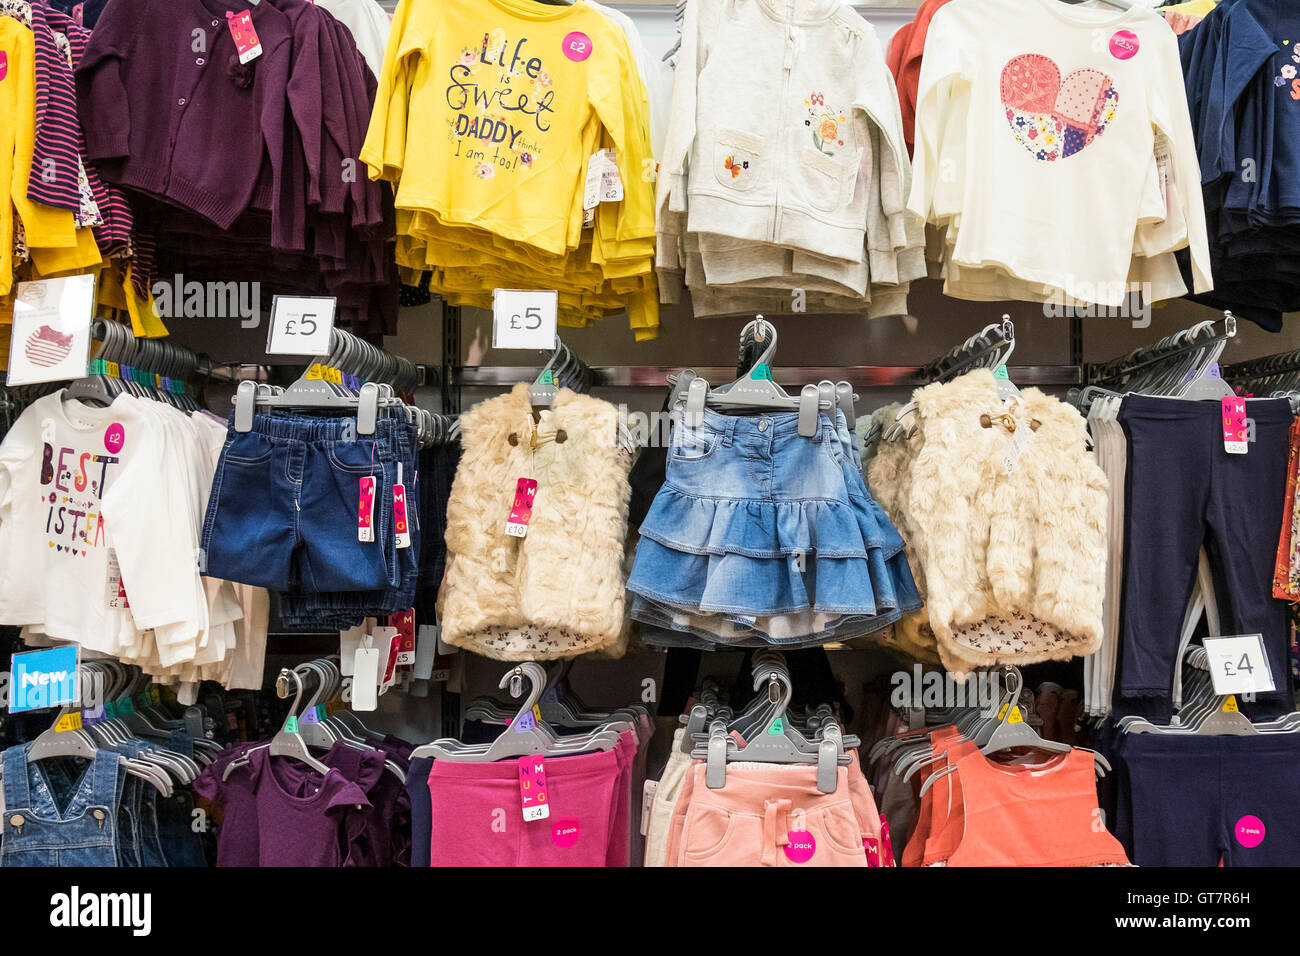 Childrens clothing on sale in a Morrisons supermarket. - Stock Image